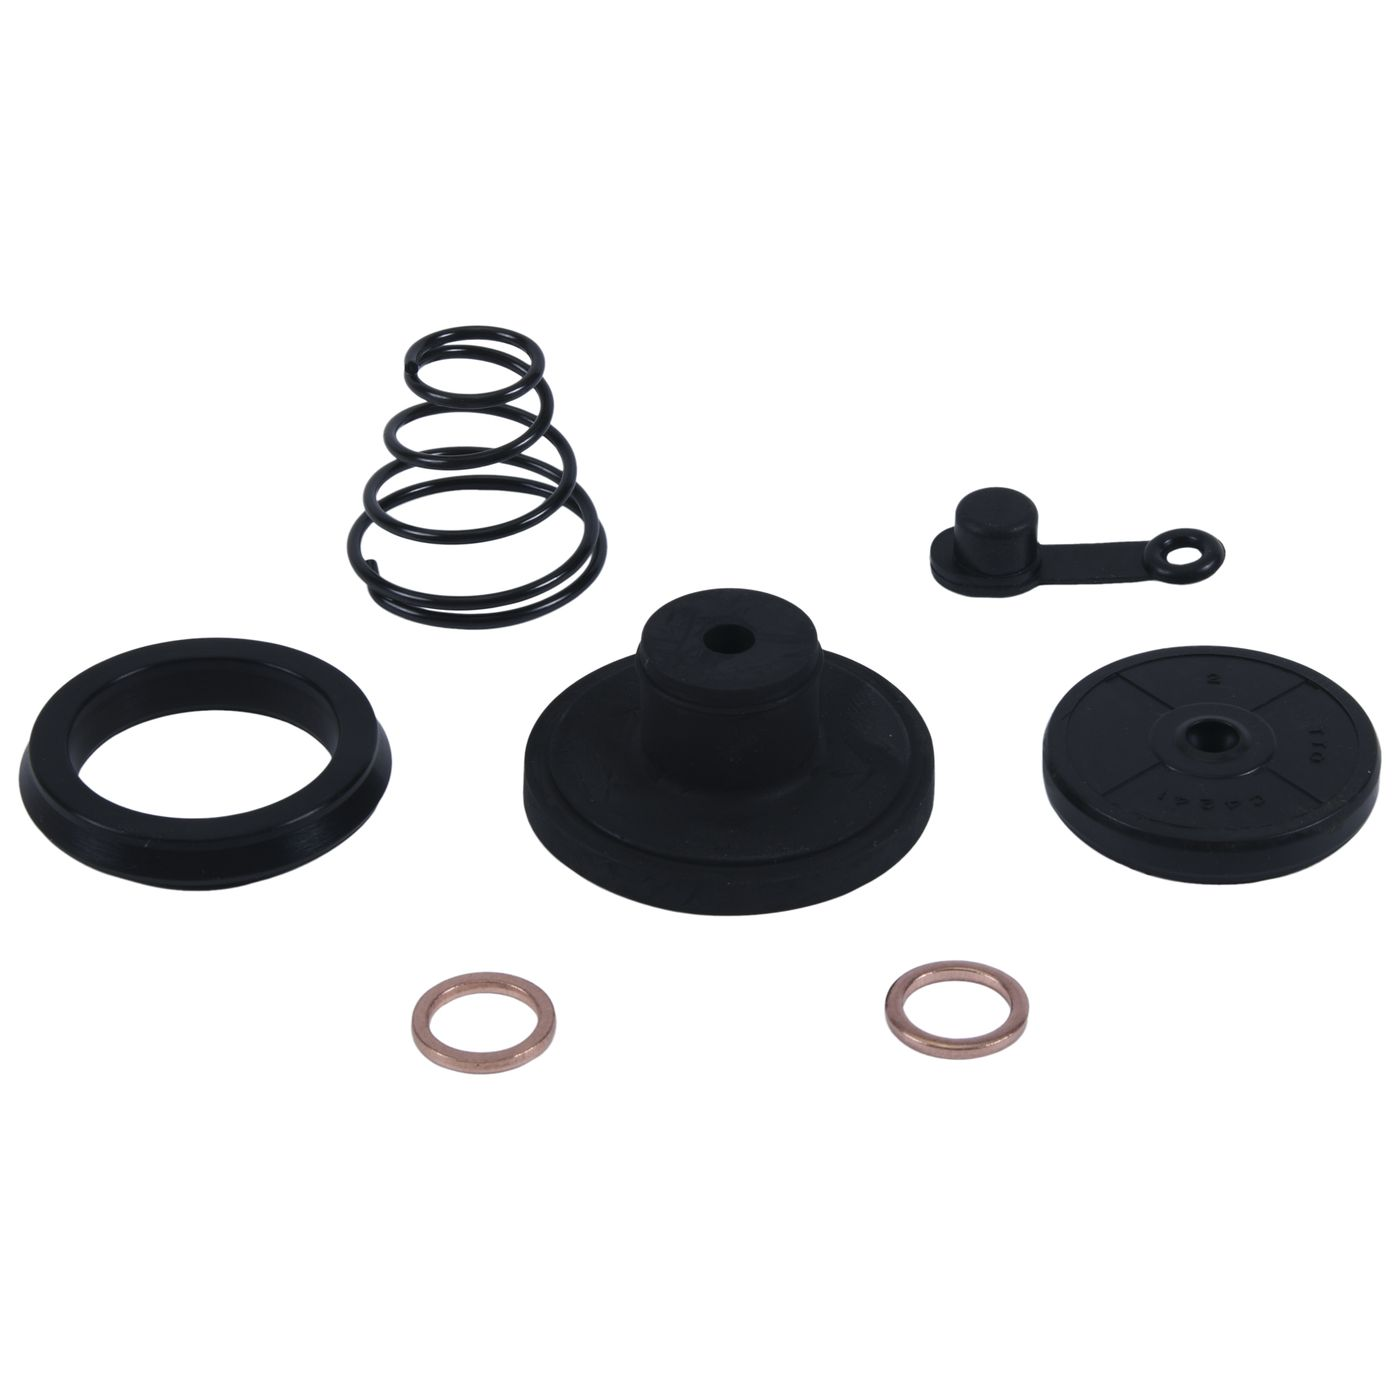 Wrp Clutch Slave Cylinder Kits - WRP186022 image